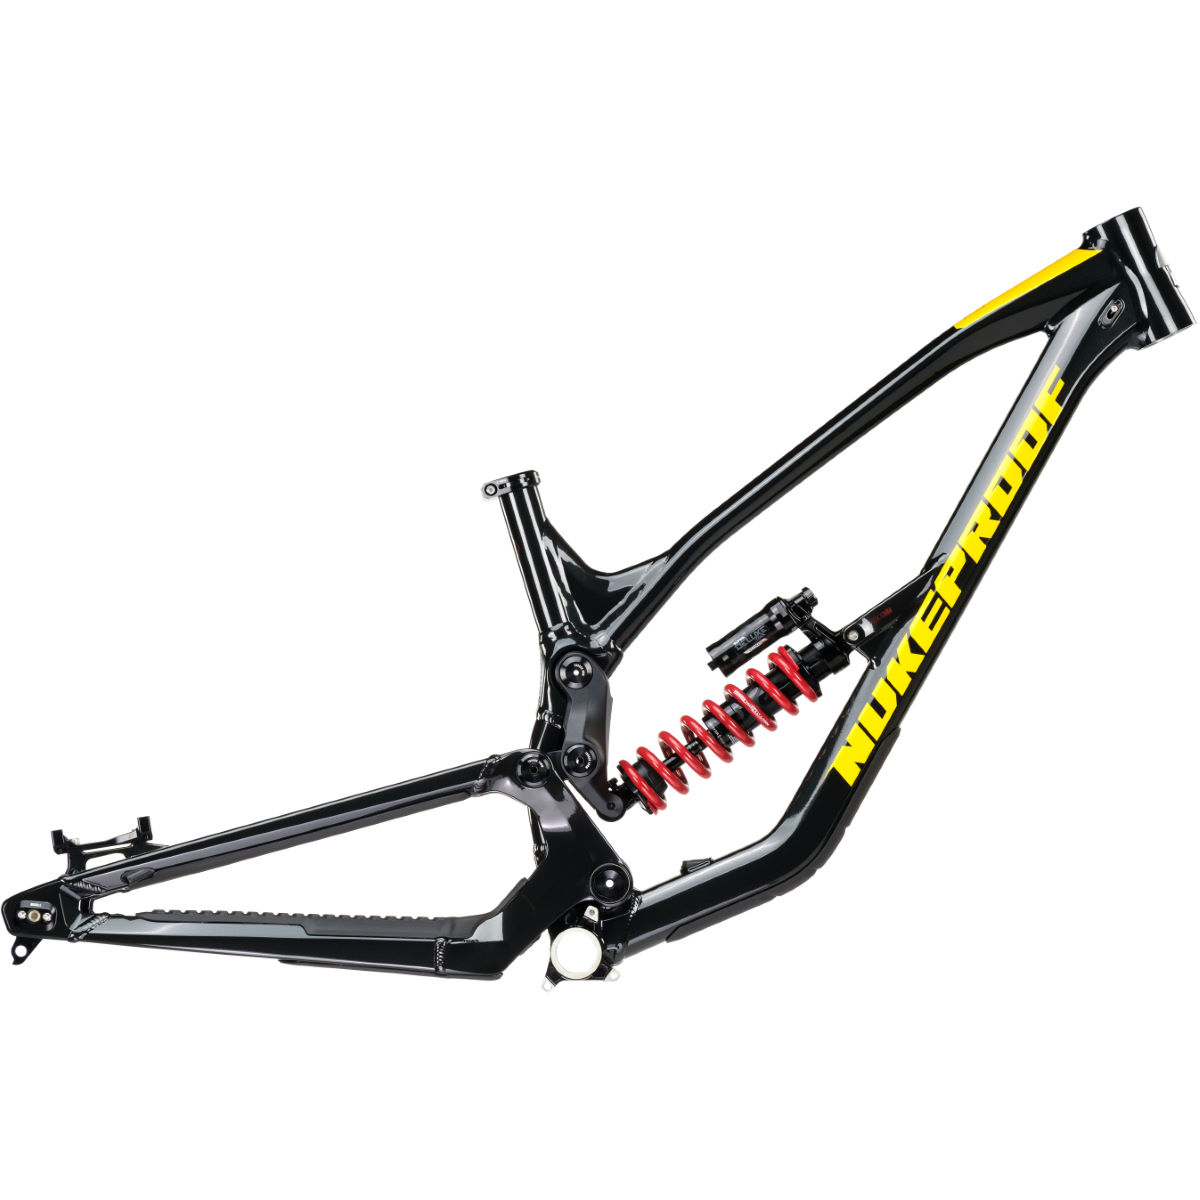 Nukeproof Nukeproof Dissent 290 DH Frame (2020)   Full Sus Mountain Bike Frames